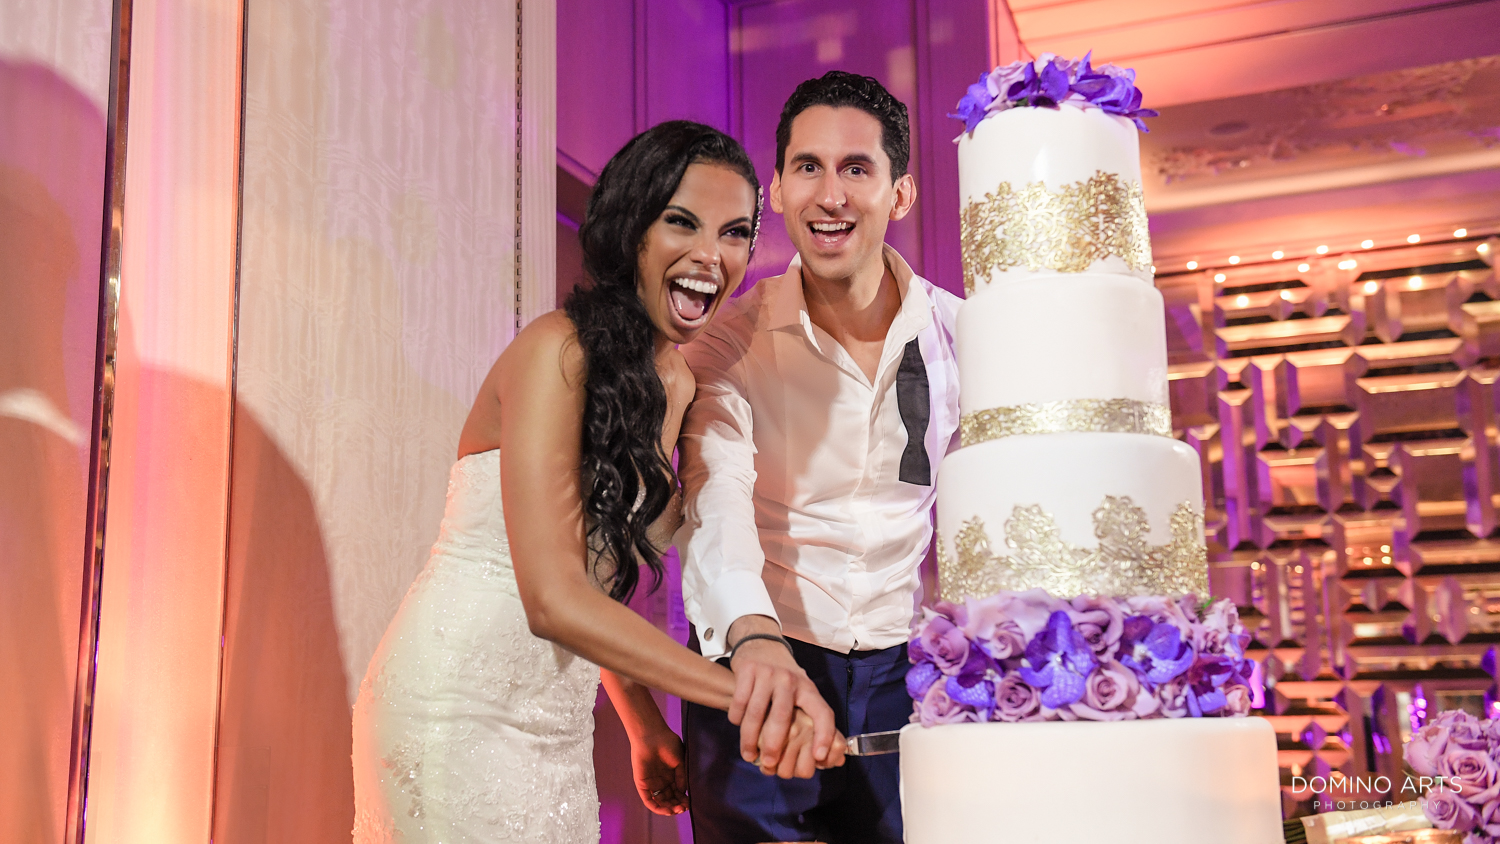 Bride and groom cutting cake at The St. Regis Bal Harbour